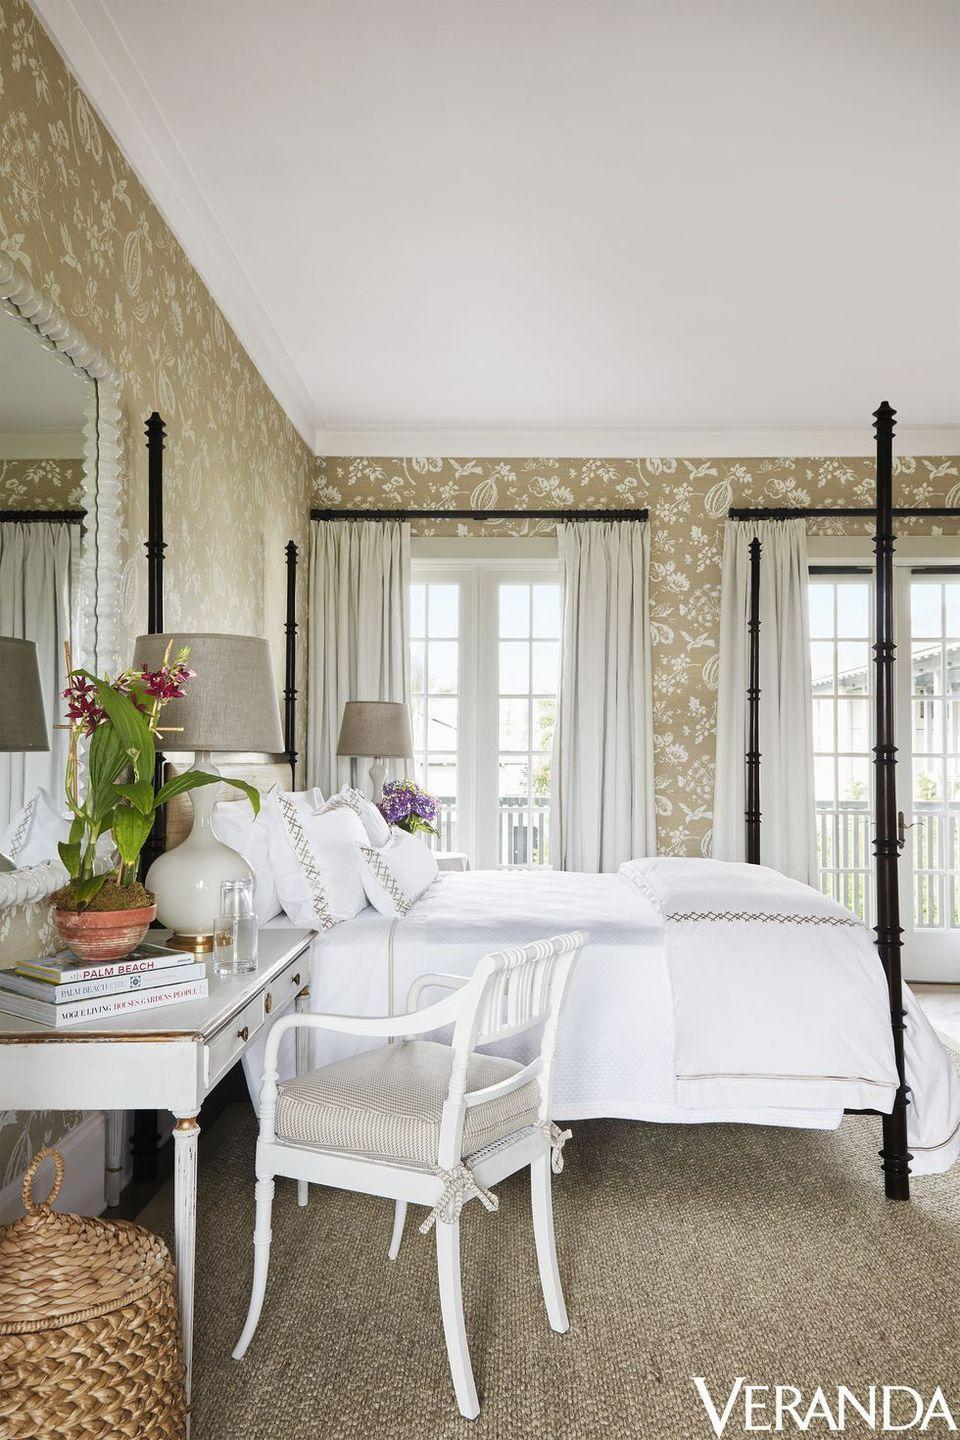 """<p>Designer Alessandra Branca embraces the beachy and relaxing setting of this <a href=""""https://www.veranda.com/decorating-ideas/a19833976/alessandra-branca-windsor-florida-village-suites/"""" rel=""""nofollow noopener"""" target=""""_blank"""" data-ylk=""""slk:Florida bedroom"""" class=""""link rapid-noclick-resp"""">Florida bedroom</a> by covering the walls in a delightfully patterned <a href=""""https://fave.co/2L3dtIf"""" rel=""""nofollow noopener"""" target=""""_blank"""" data-ylk=""""slk:Brunschwig & Fils"""" class=""""link rapid-noclick-resp"""">Brunschwig & Fils</a> cotton. Bed linens from <a href=""""https://go.redirectingat.com/?id=74968X1525088&xs=1&url=https%3A%2F%2Fwww.sferra.com%2Fcasa-branca-sferra&sref=https%3A%2F%2Fwww.veranda.com%2Fdecorating-ideas%2Fa19833976%2Falessandra-branca-windsor-florida-village-suites%2F"""" rel=""""nofollow noopener"""" target=""""_blank"""" data-ylk=""""slk:Casa Branca for Sferra"""" class=""""link rapid-noclick-resp"""">Casa Branca for Sferra</a> envelop the four-poster <a href=""""https://fave.co/2L48Ldj"""" rel=""""nofollow noopener"""" target=""""_blank"""" data-ylk=""""slk:Oly"""" class=""""link rapid-noclick-resp"""">Oly</a> bed. The cushion of the vintage chair is in a <a href=""""https://fave.co/2DAuDqt"""" rel=""""nofollow noopener"""" target=""""_blank"""" data-ylk=""""slk:Dedar"""" class=""""link rapid-noclick-resp"""">Dedar</a> fabric. </p>"""